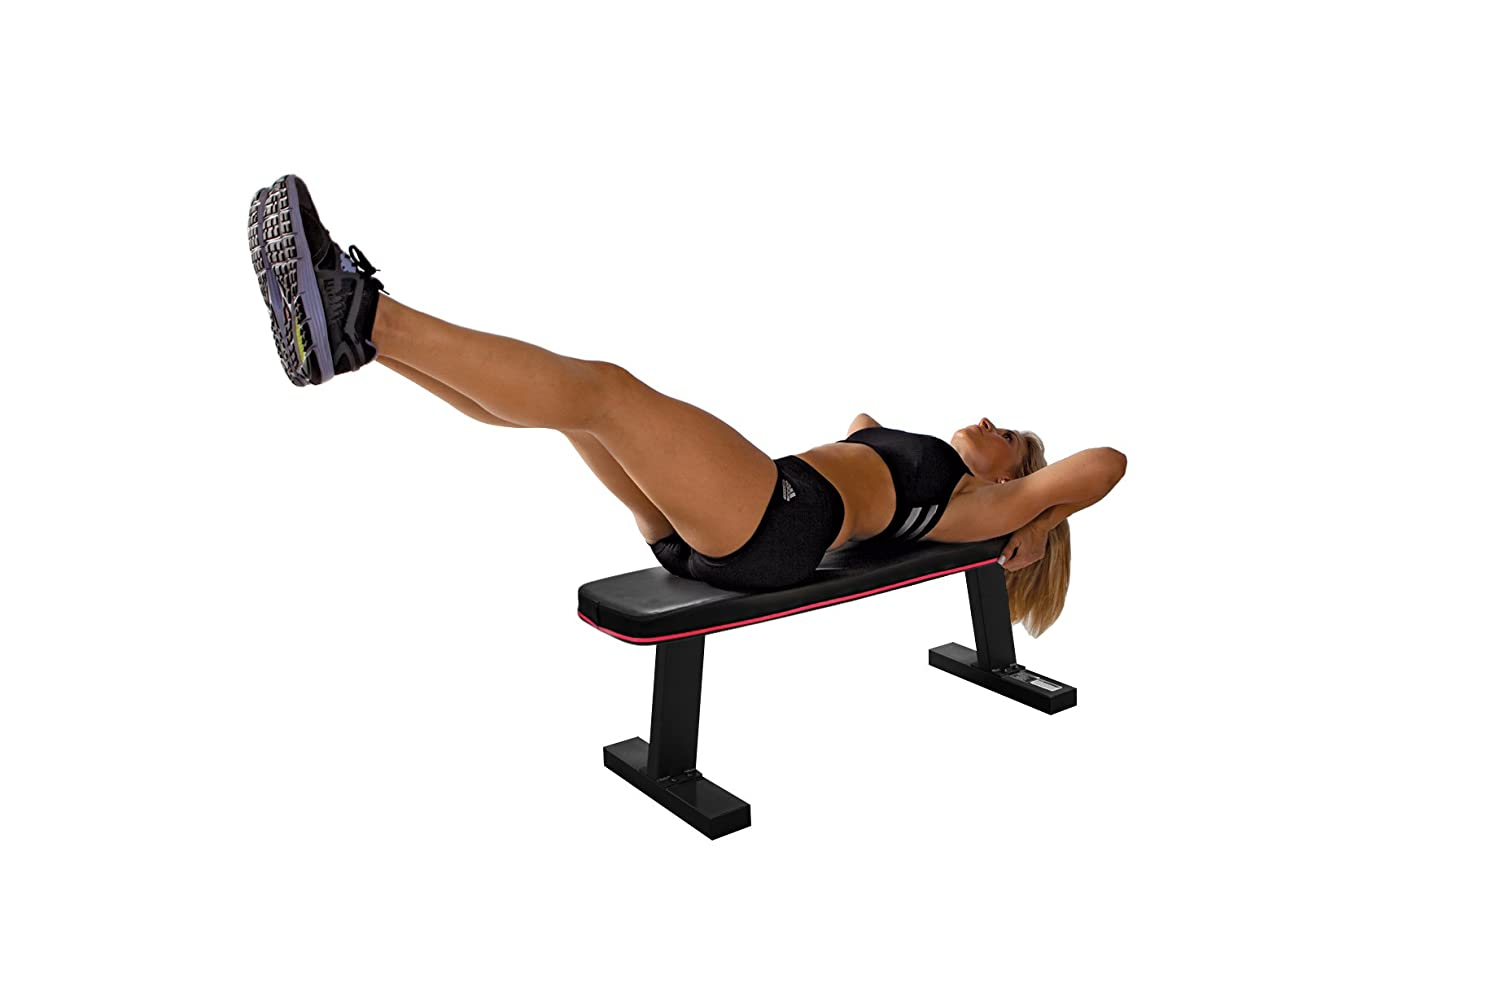 with leg bench handle cfm body champ and developer product benches hayneedle curl crunch exercise weight master olympic preacher